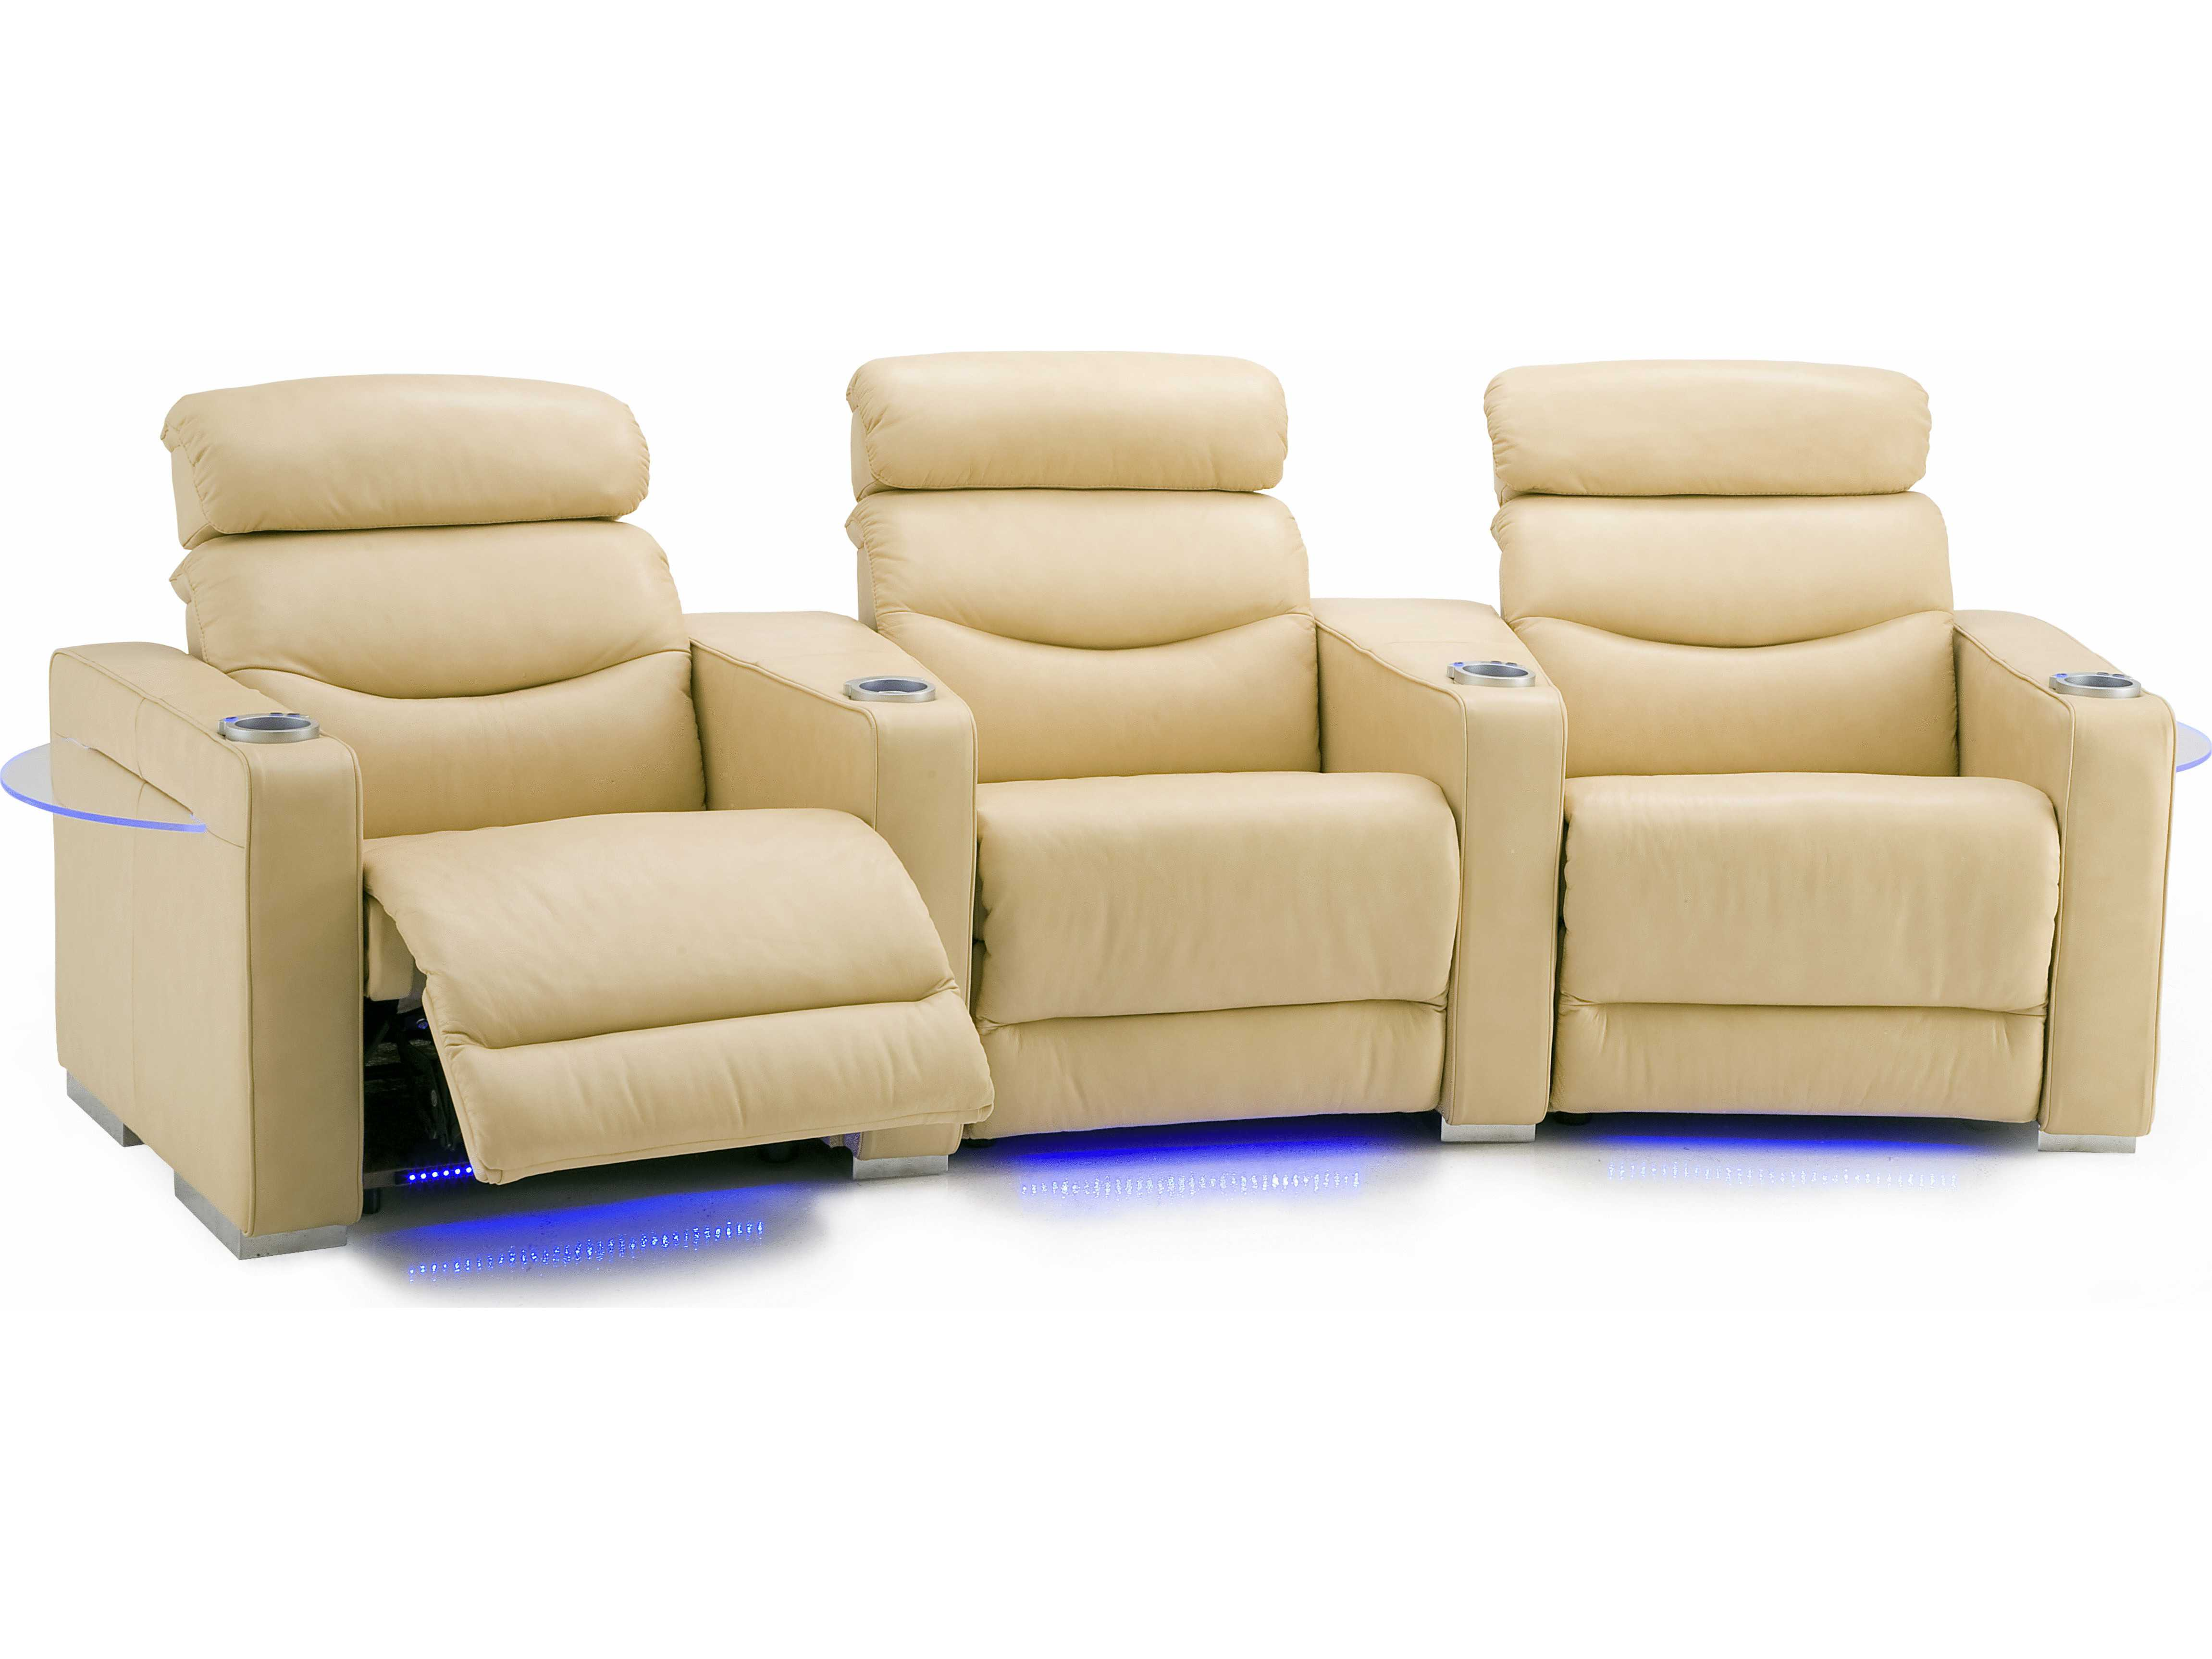 4 person reclining sofa black friday corner bed deals palliser digital hts manual home theater